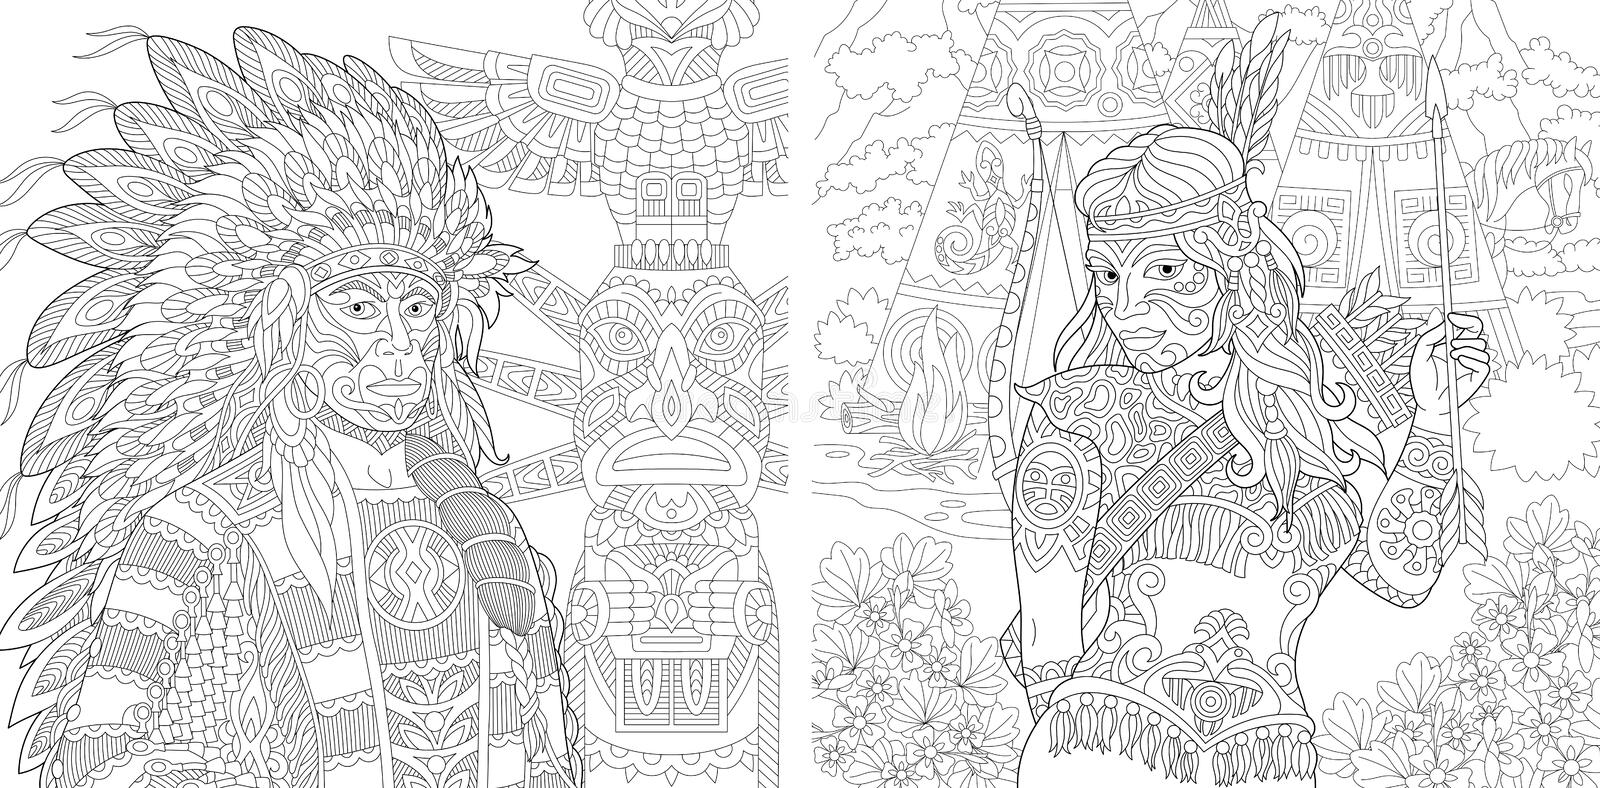 Revolutionary War solder coloring pages: 11 historic uniforms ... | 394x800